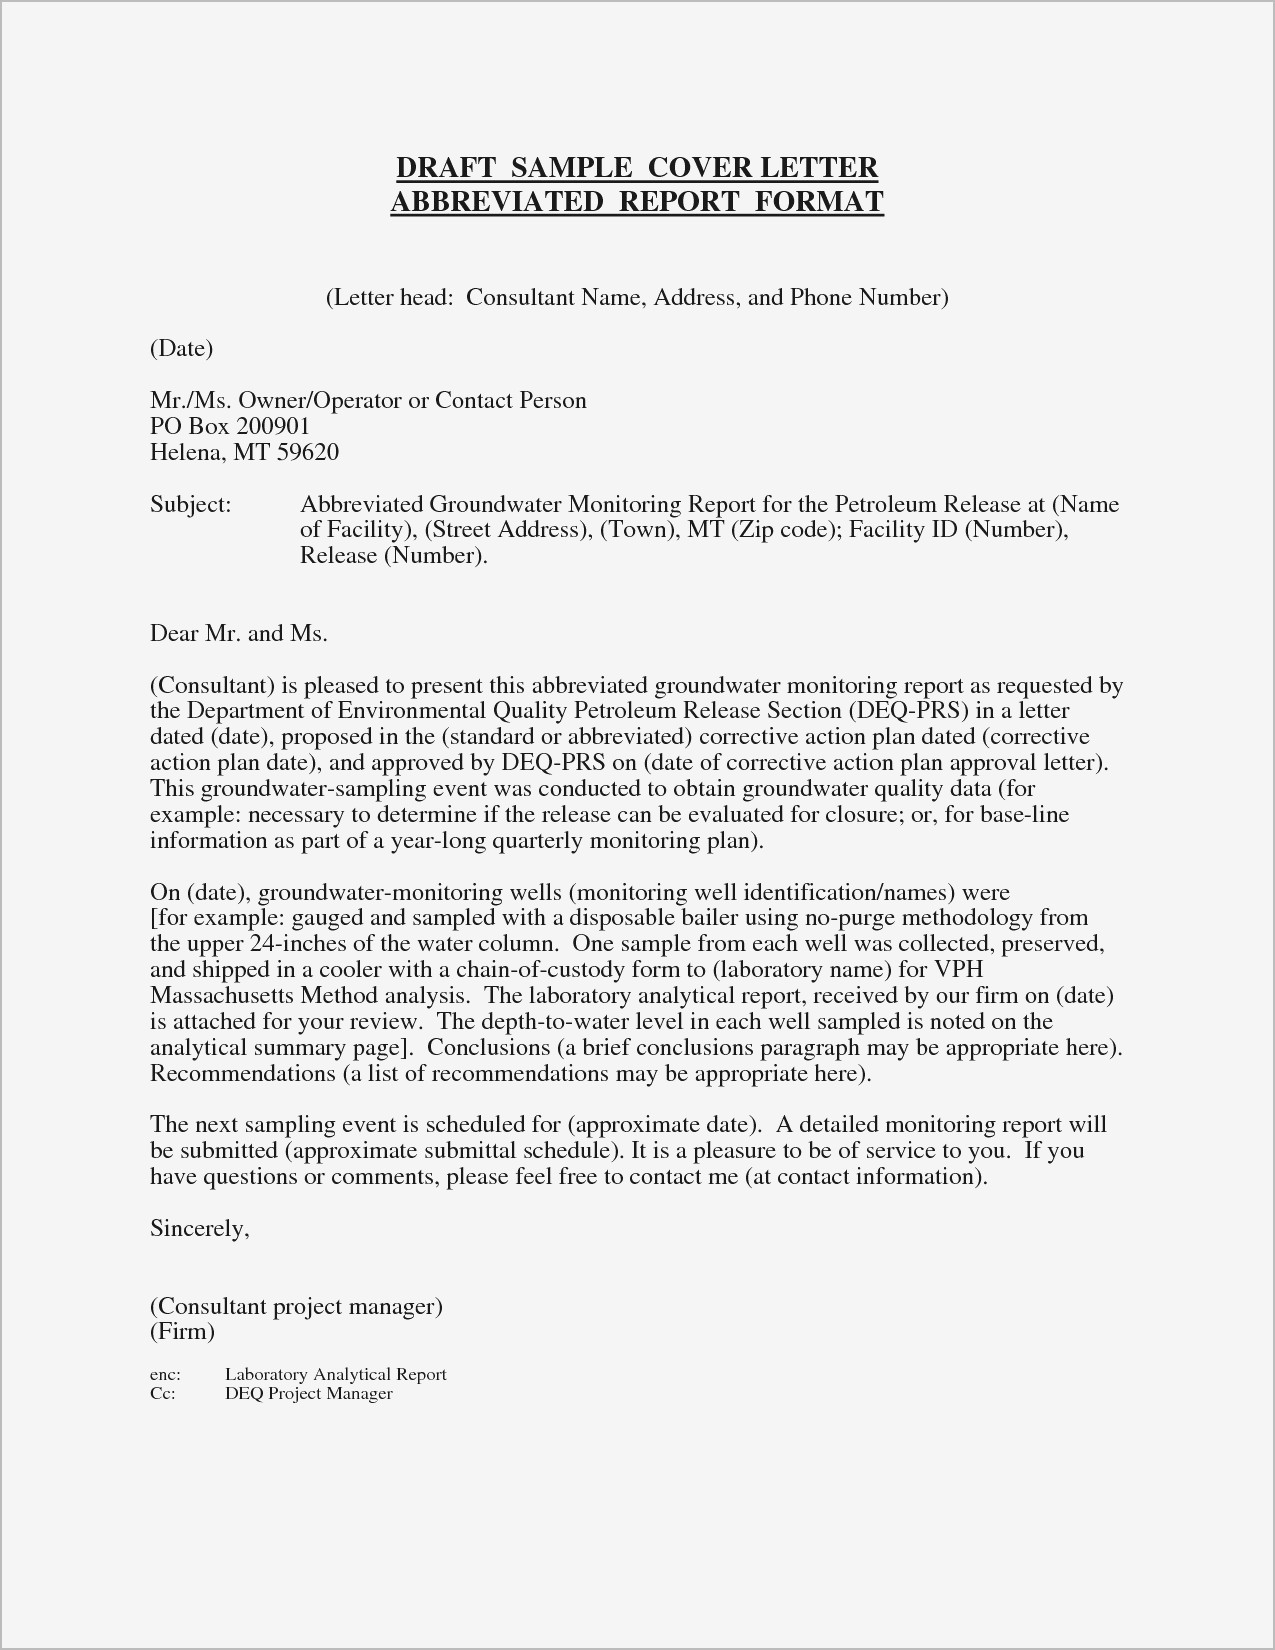 Cover Letter Template Fill In - How to Do A Cover Letter for Resume New Awesome Cover Letter Fill In